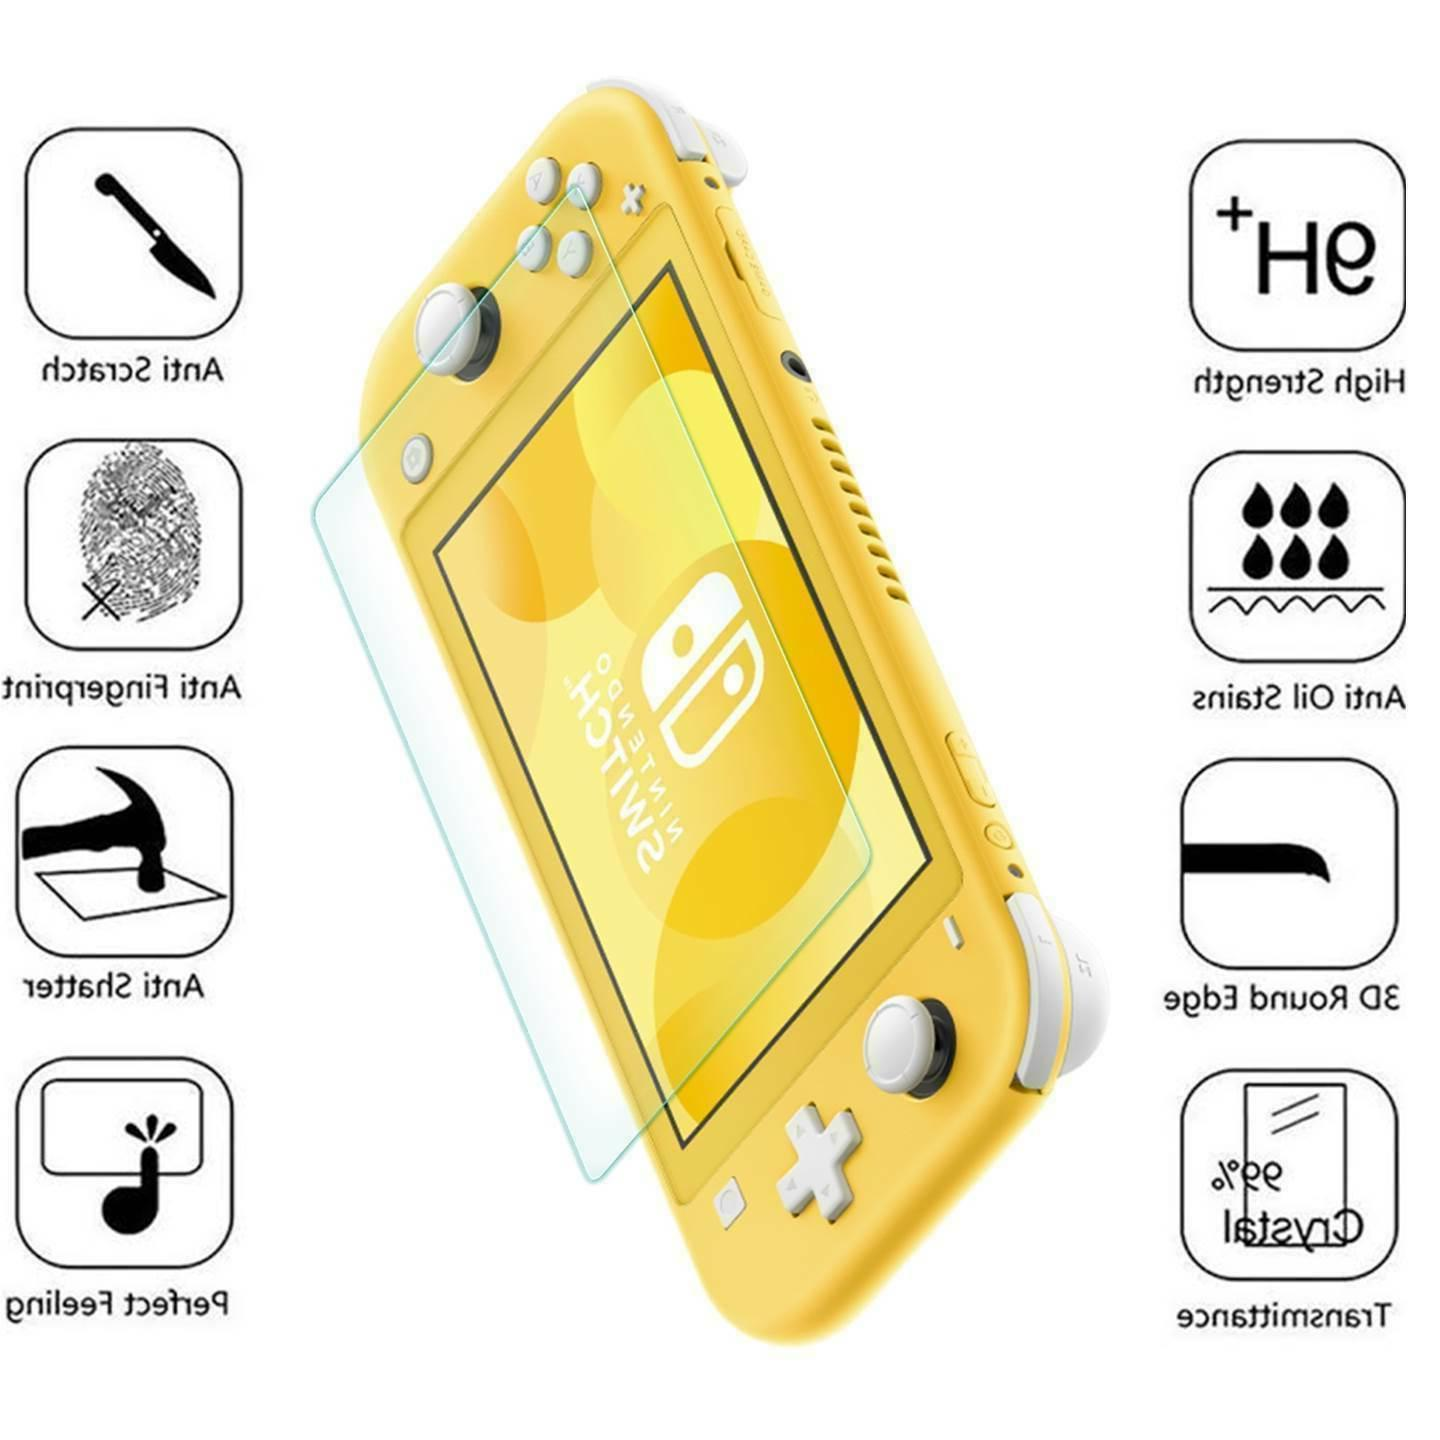 2 Switch Lite Tempered Glass